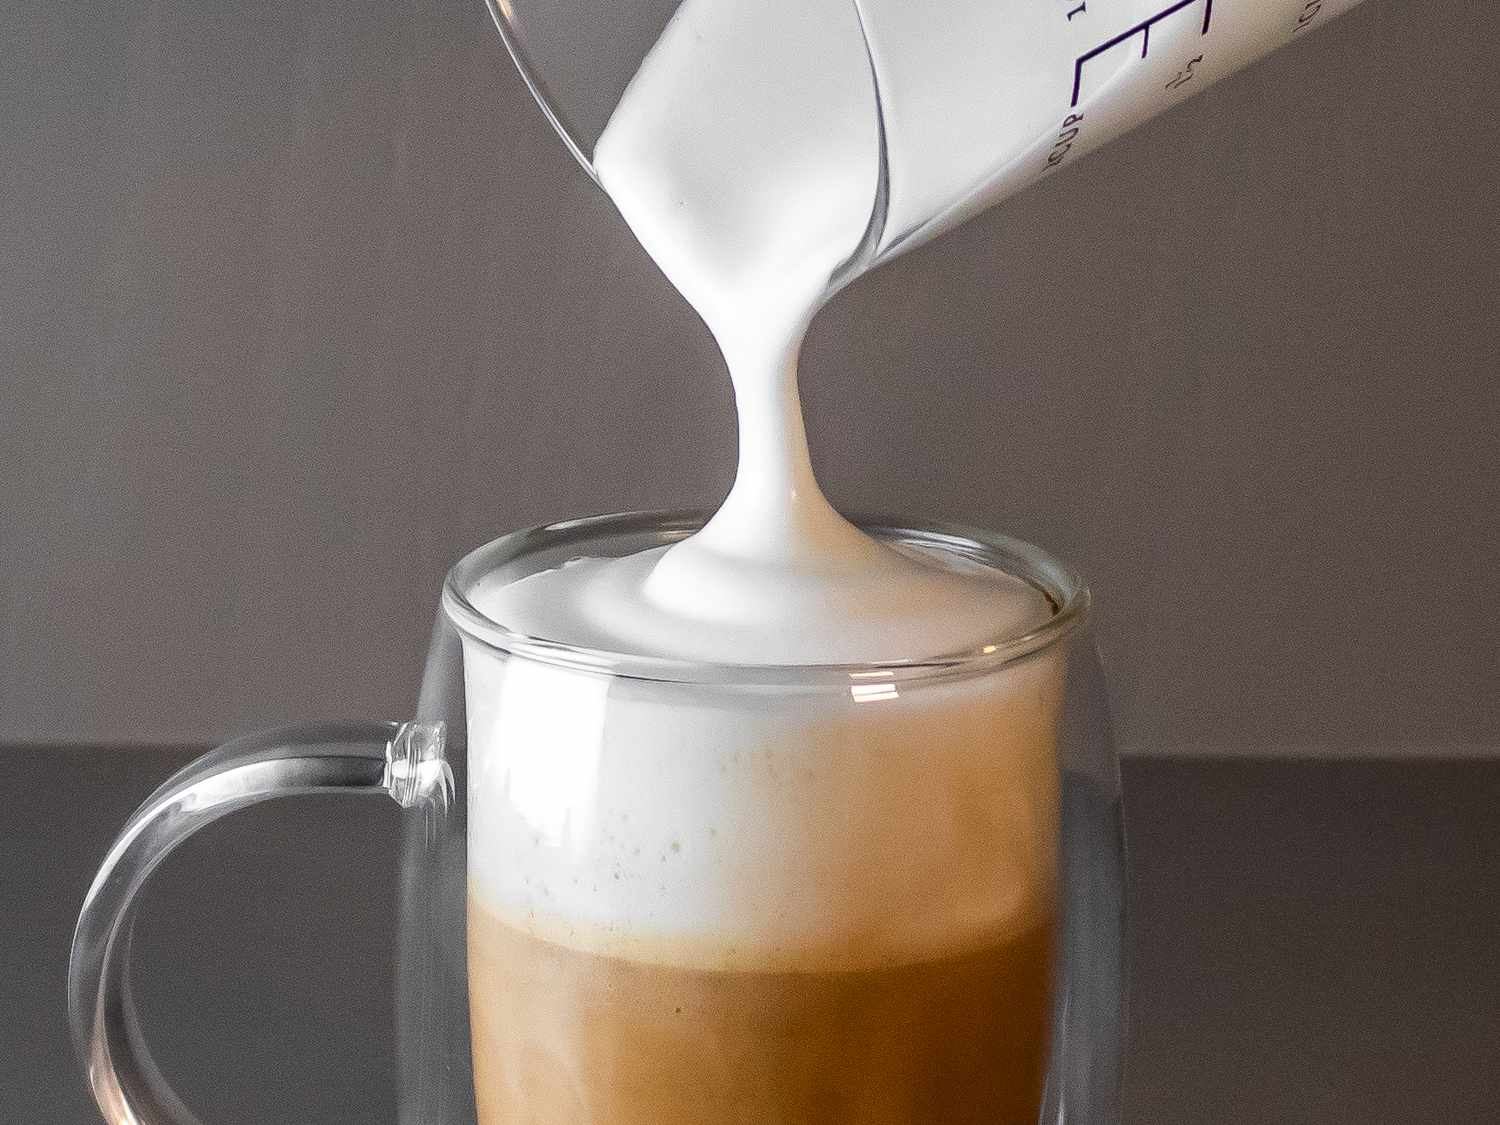 a close up of milk foam being poured into a coffee cup